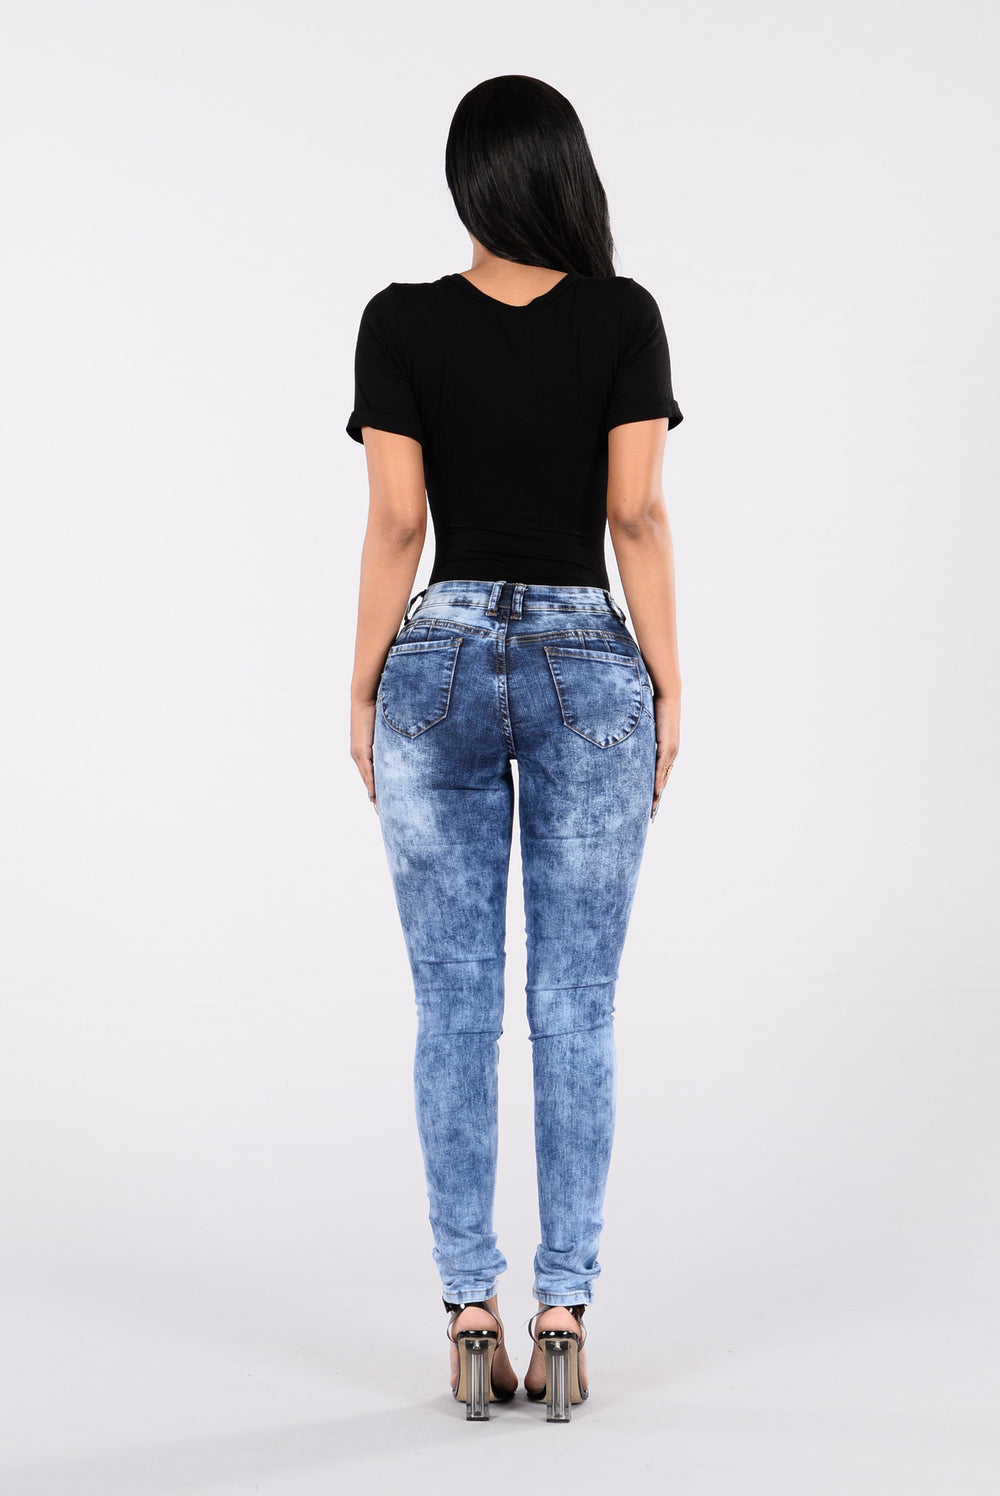 Be There Soon Jeans - Dark Blue